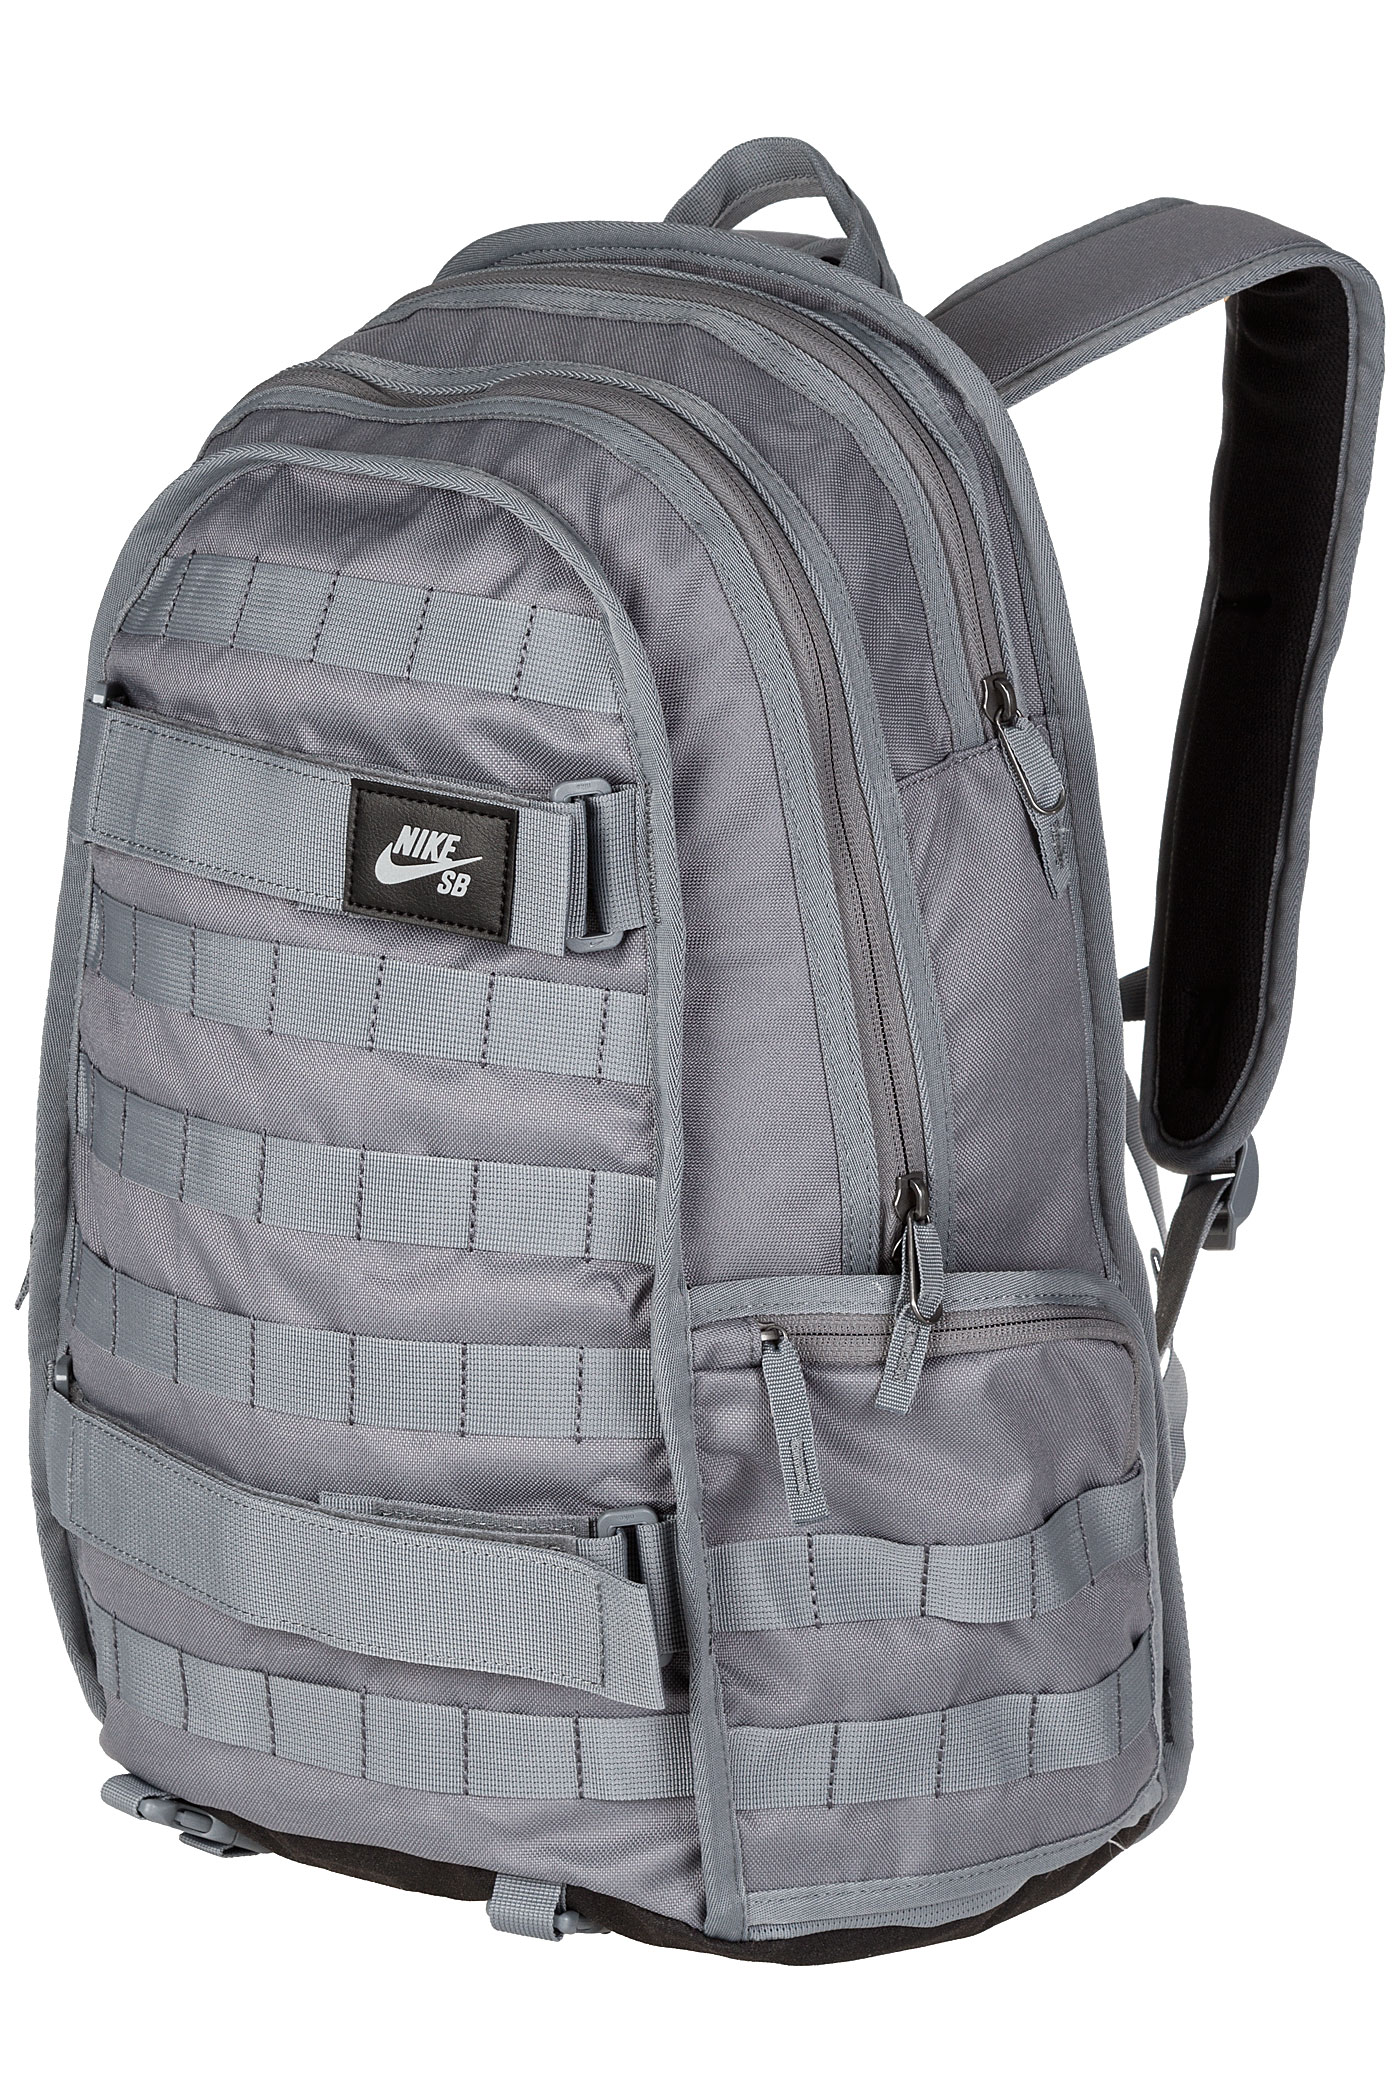 nike sb rpm backpack grey